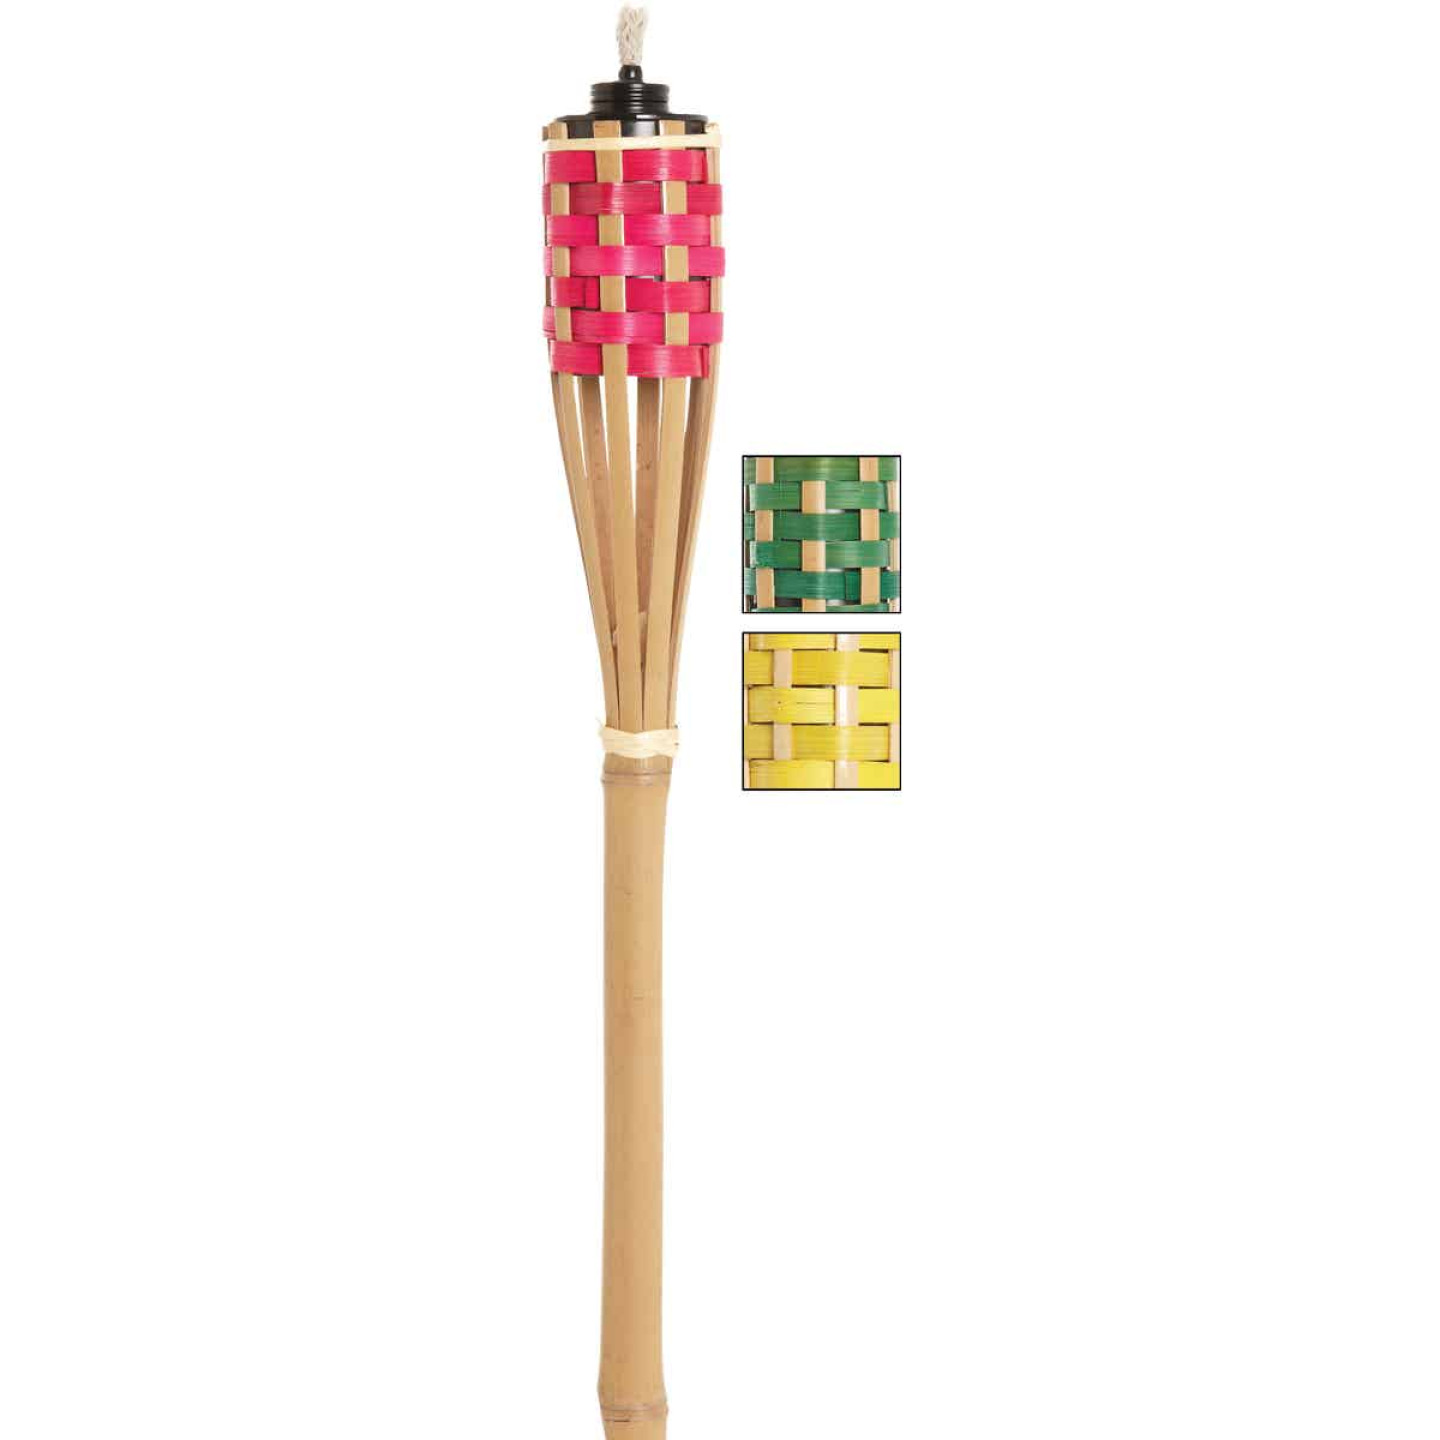 Outdoor Expressions 4 Ft. Assorted Color Bamboo Party Patio Torch Image 1